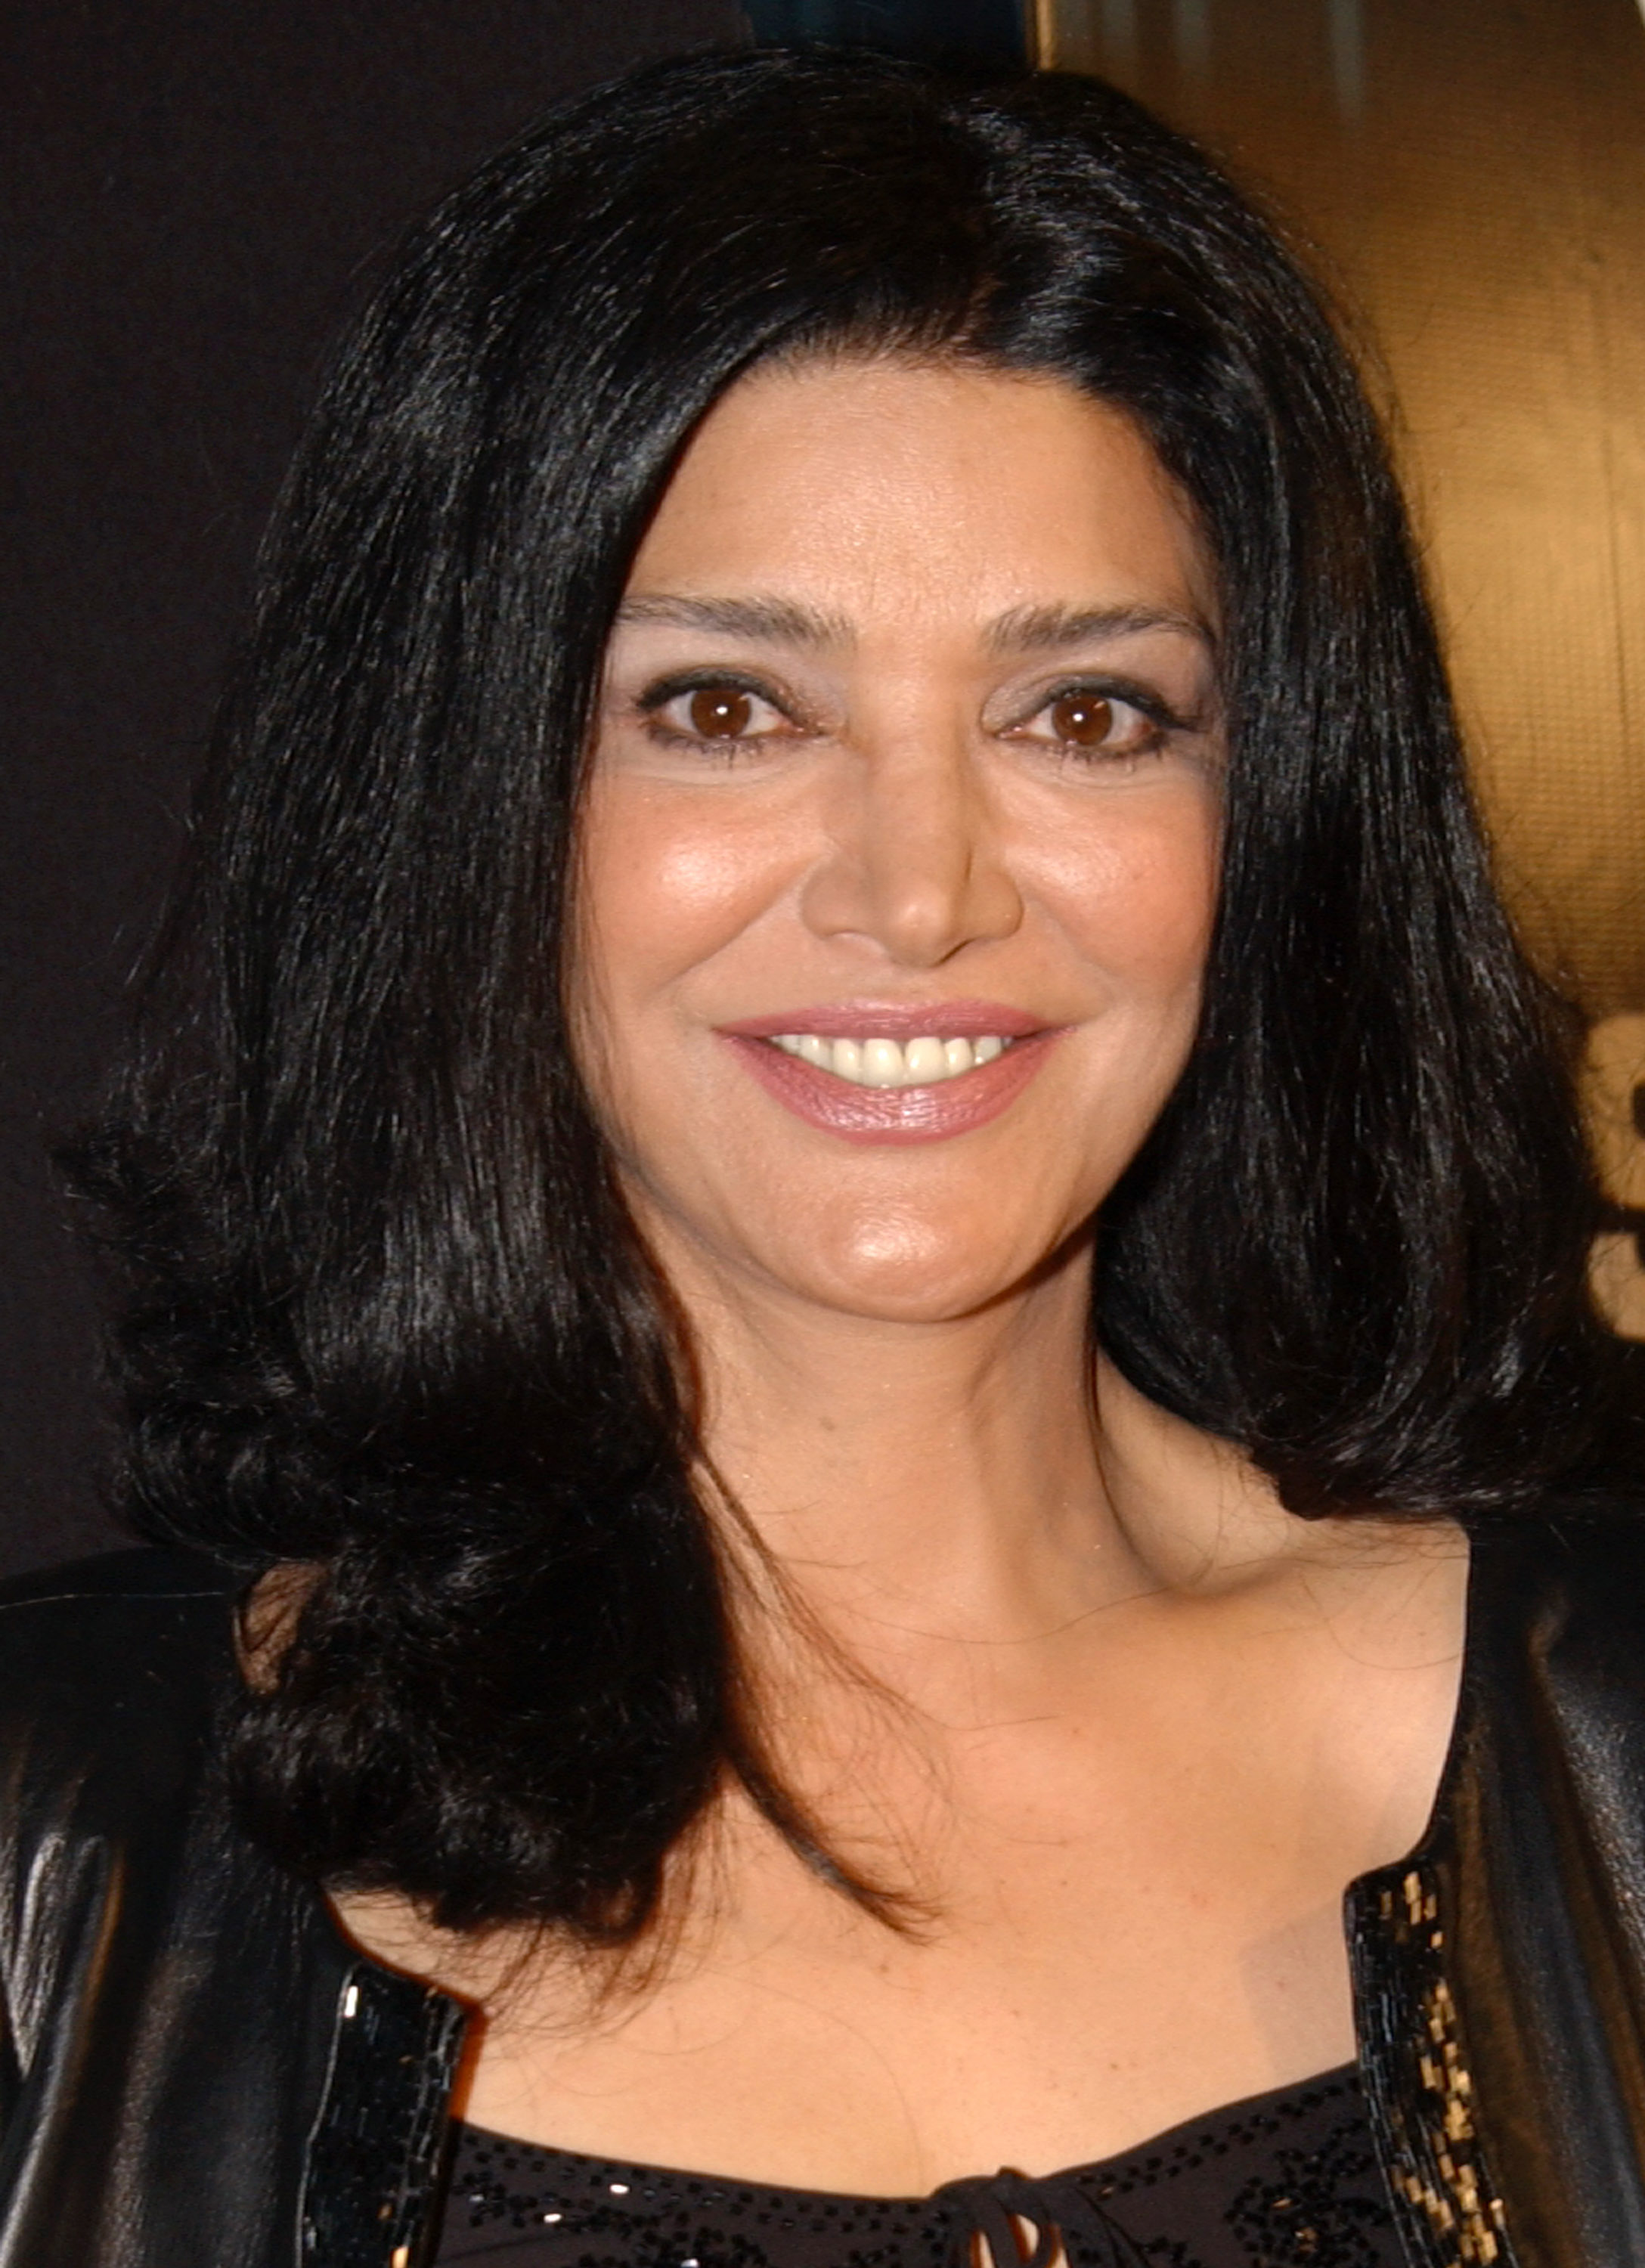 Afghan Girl Eyes Wallpaper Pictures Of Shohreh Aghdashloo Pictures Of Celebrities